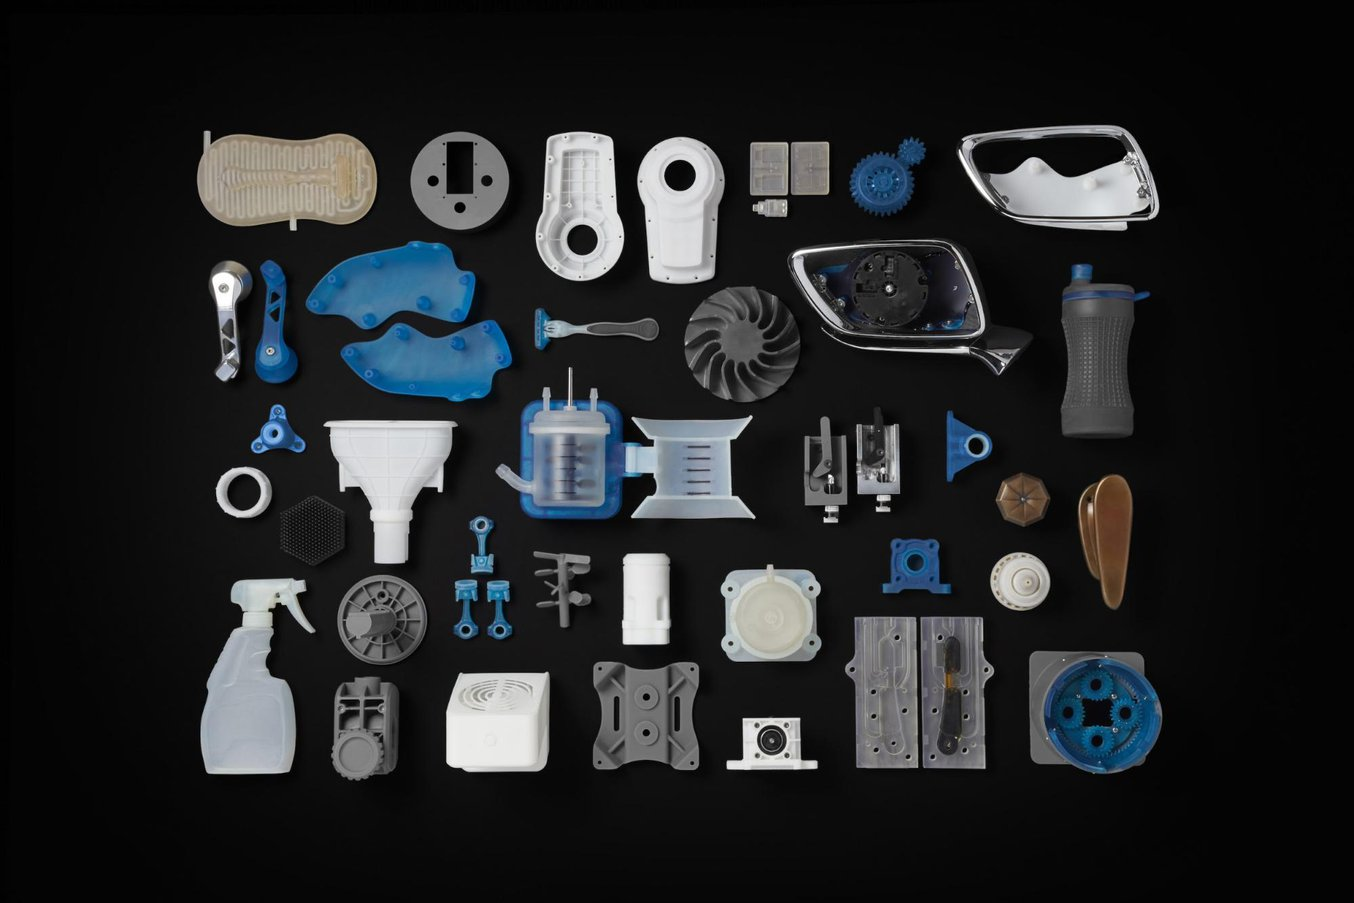 SLA 3D printers offer diverse materials for engineering and manufacturing applications.